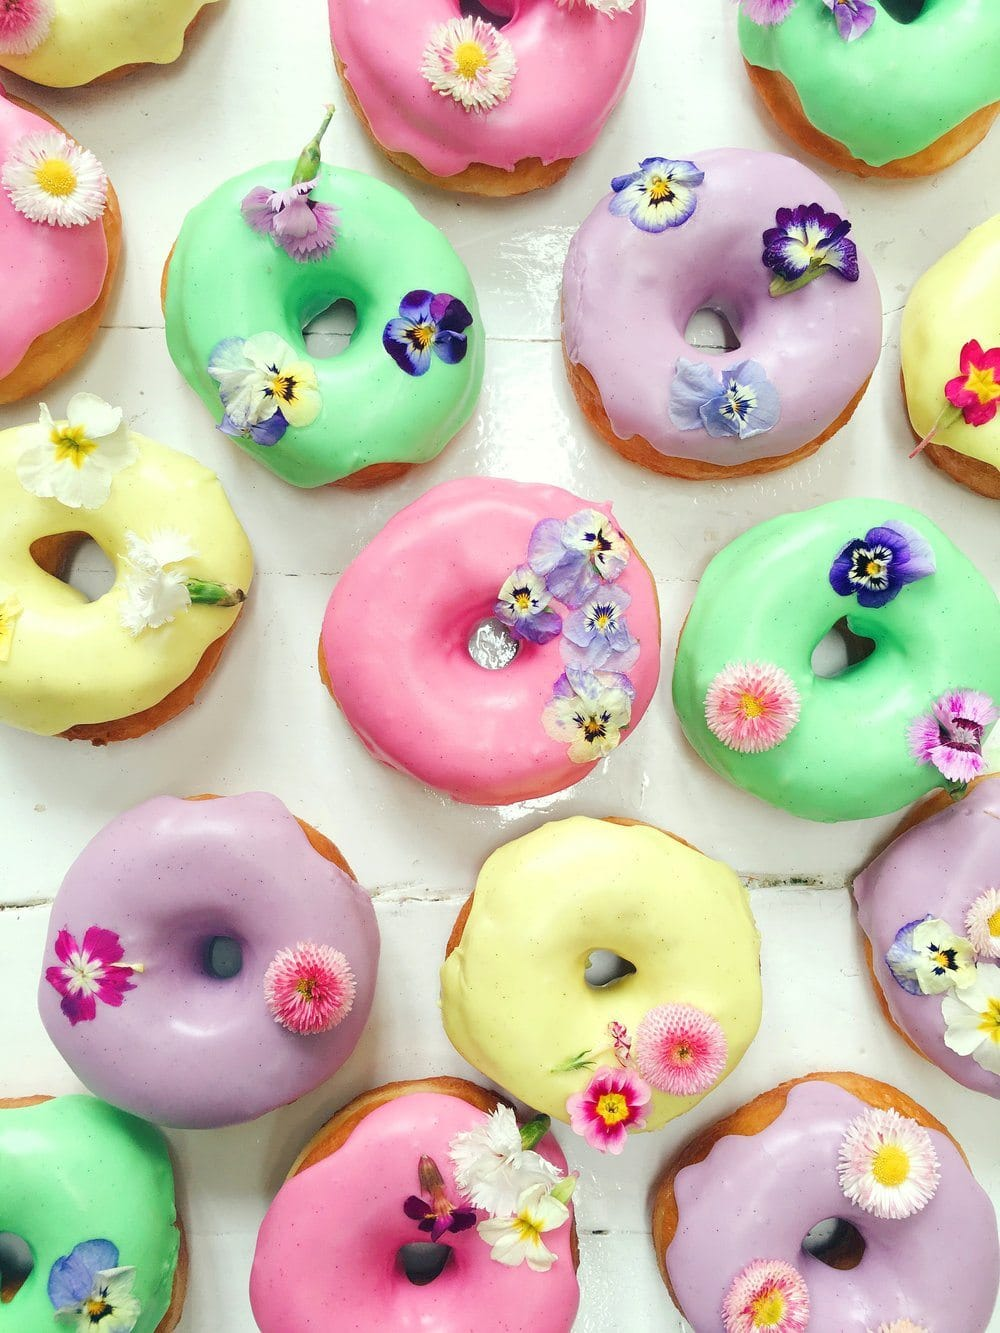 Ring donuts from Vicky's Donuts iced in bright colours and decorated with edible flowers